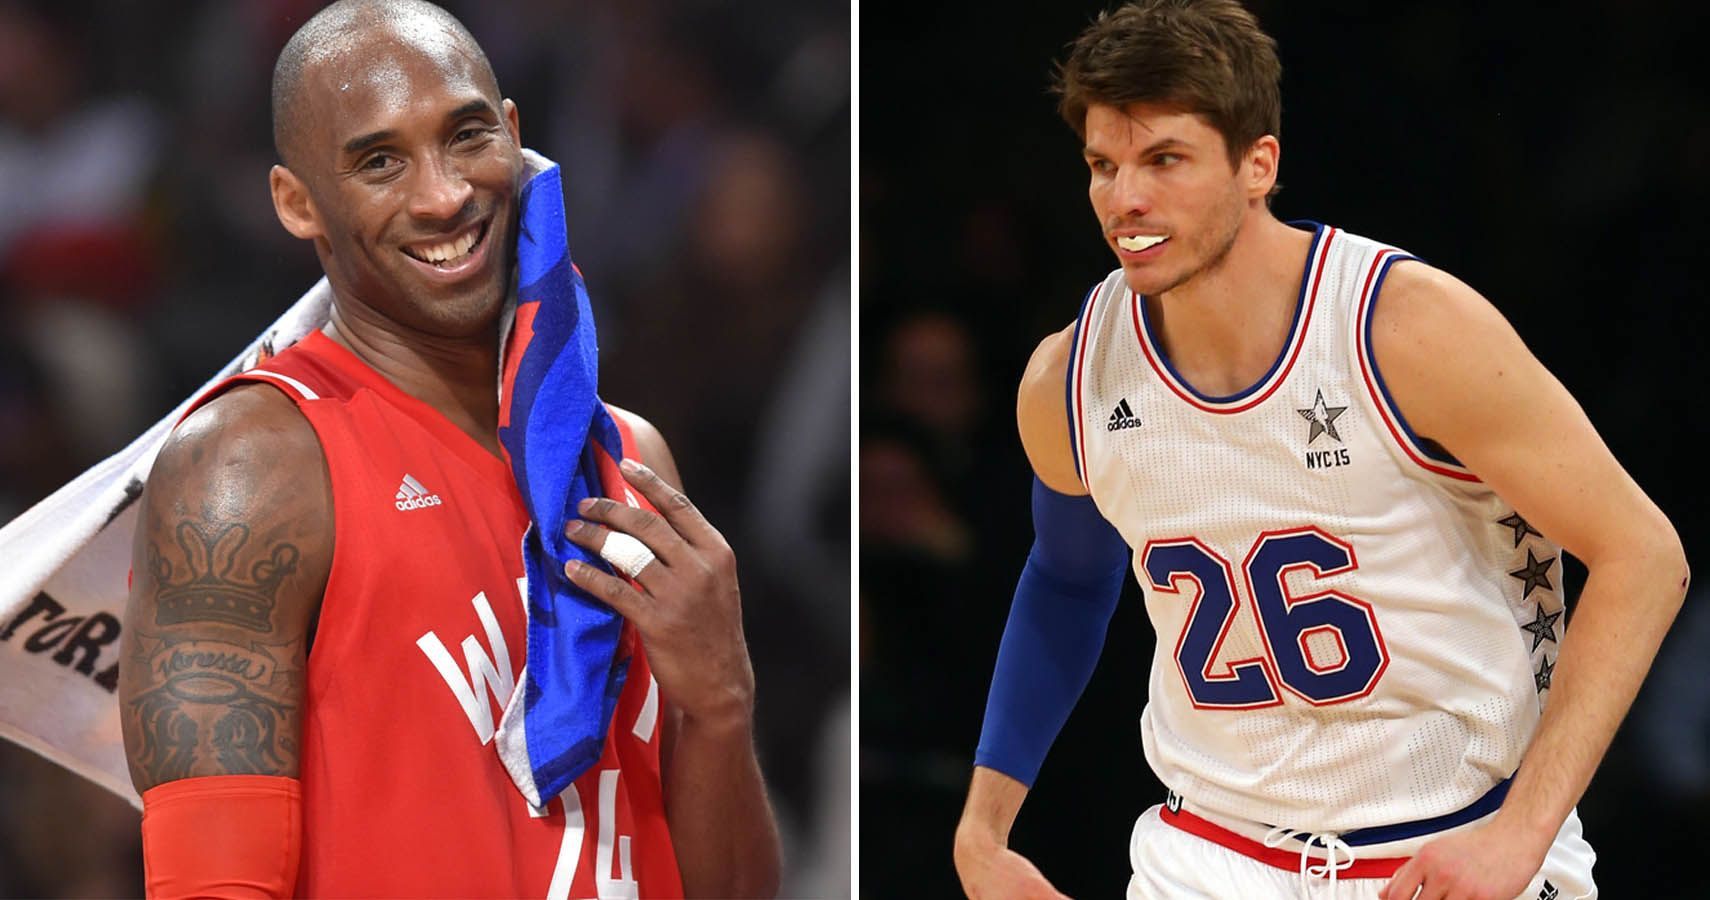 fe8827a94 The Worst All-Star At The Last 15 NBA All-Star Games